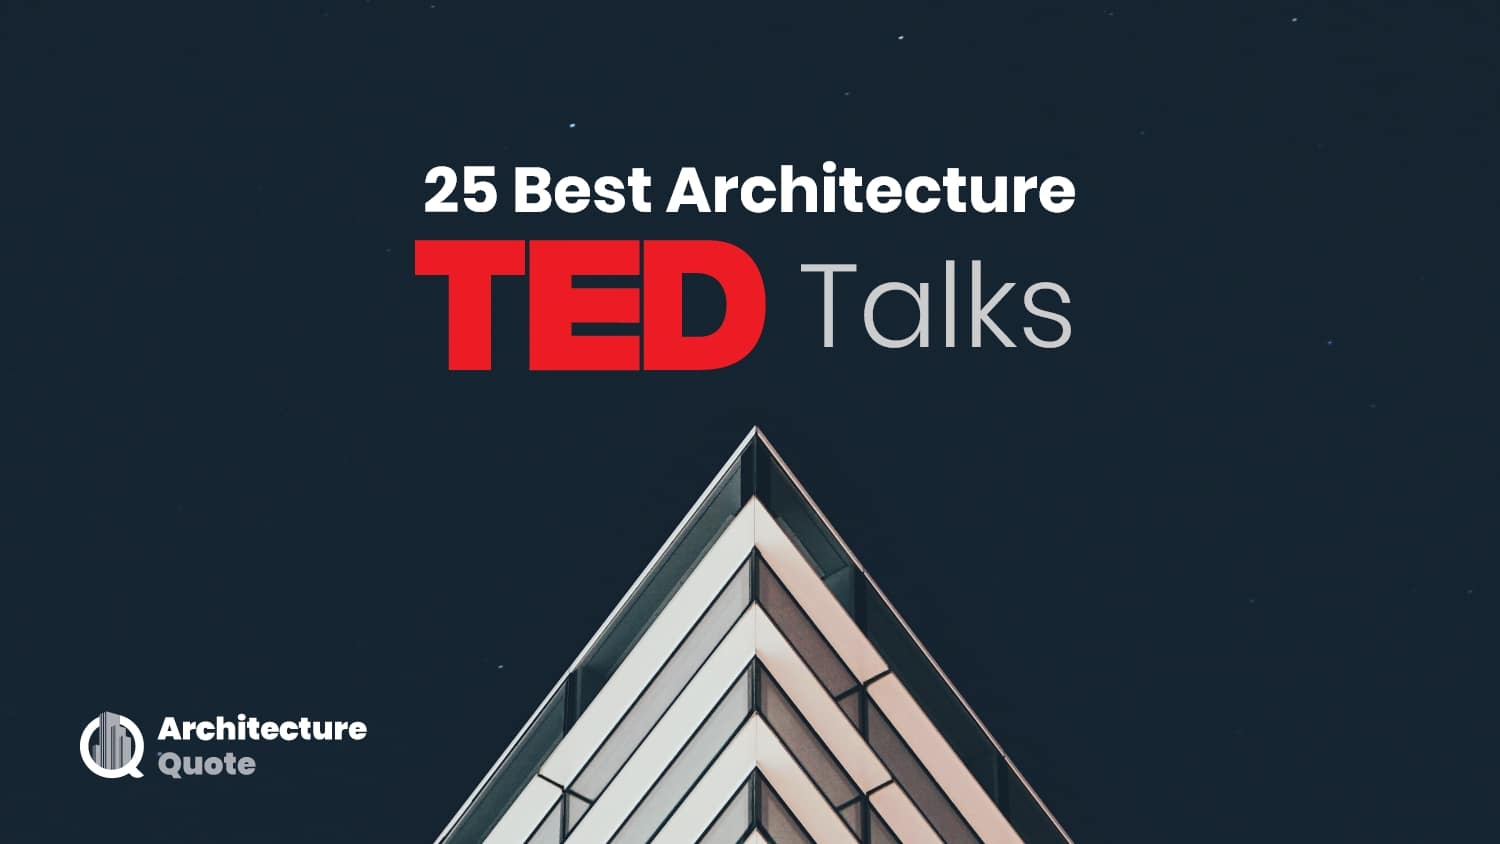 25 Best Architecture TED Talks